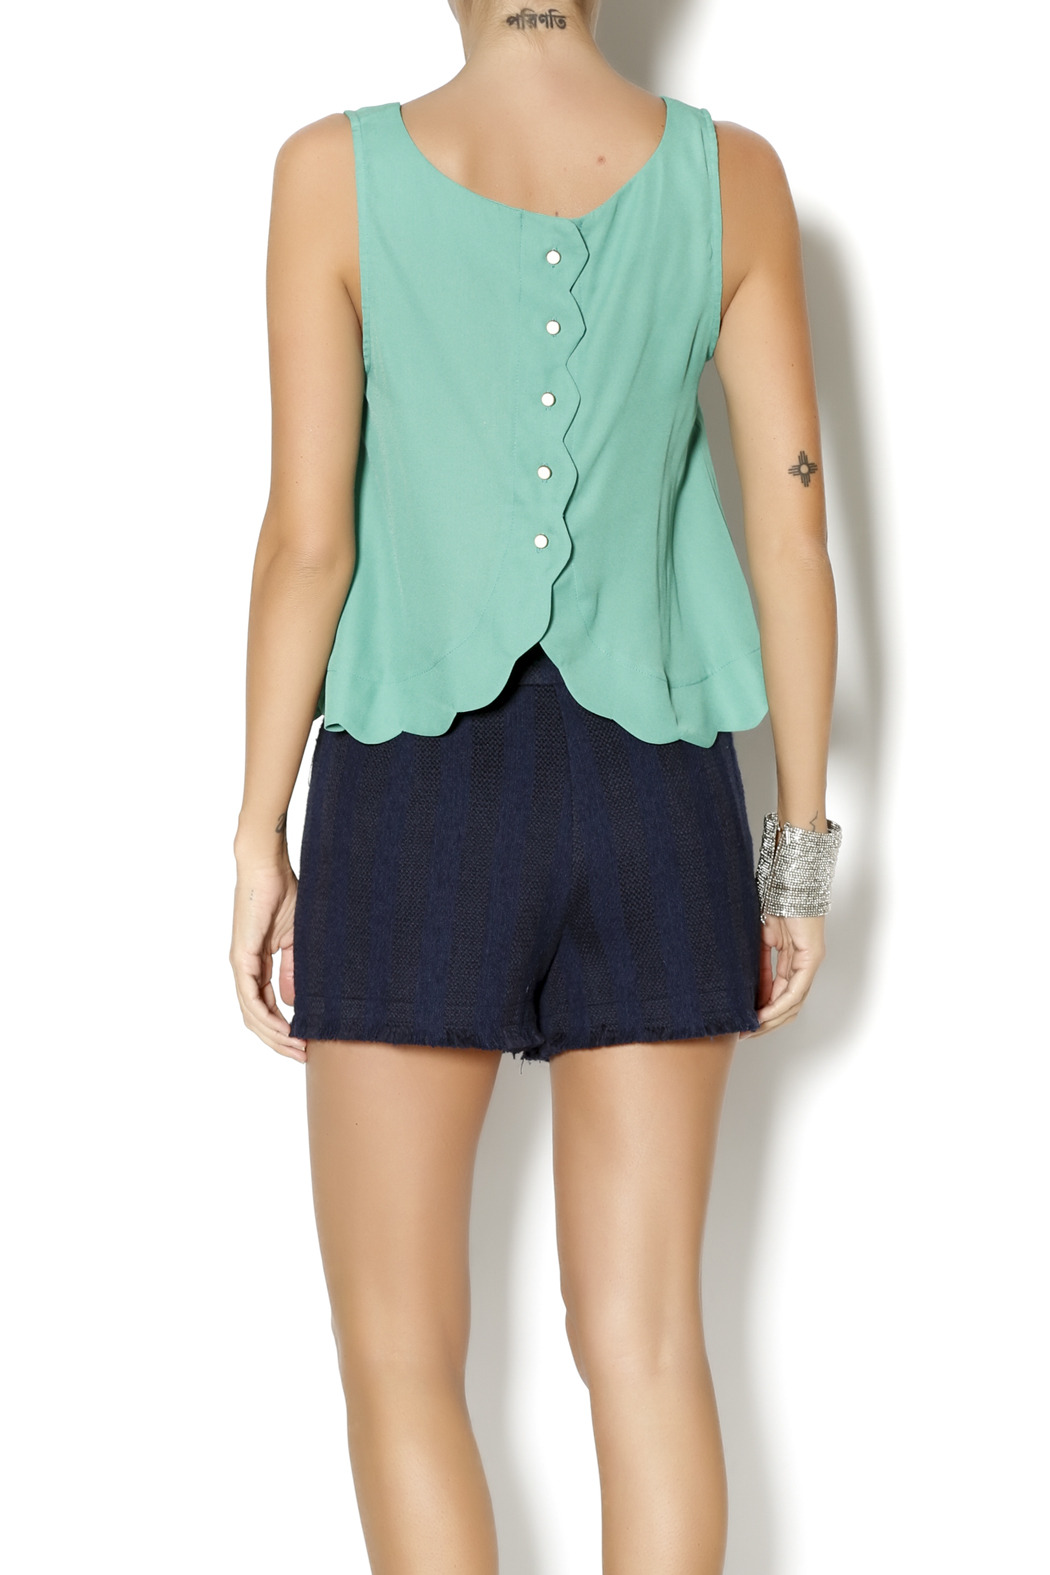 Byrds Mint Fashionable Tank - Back Cropped Image